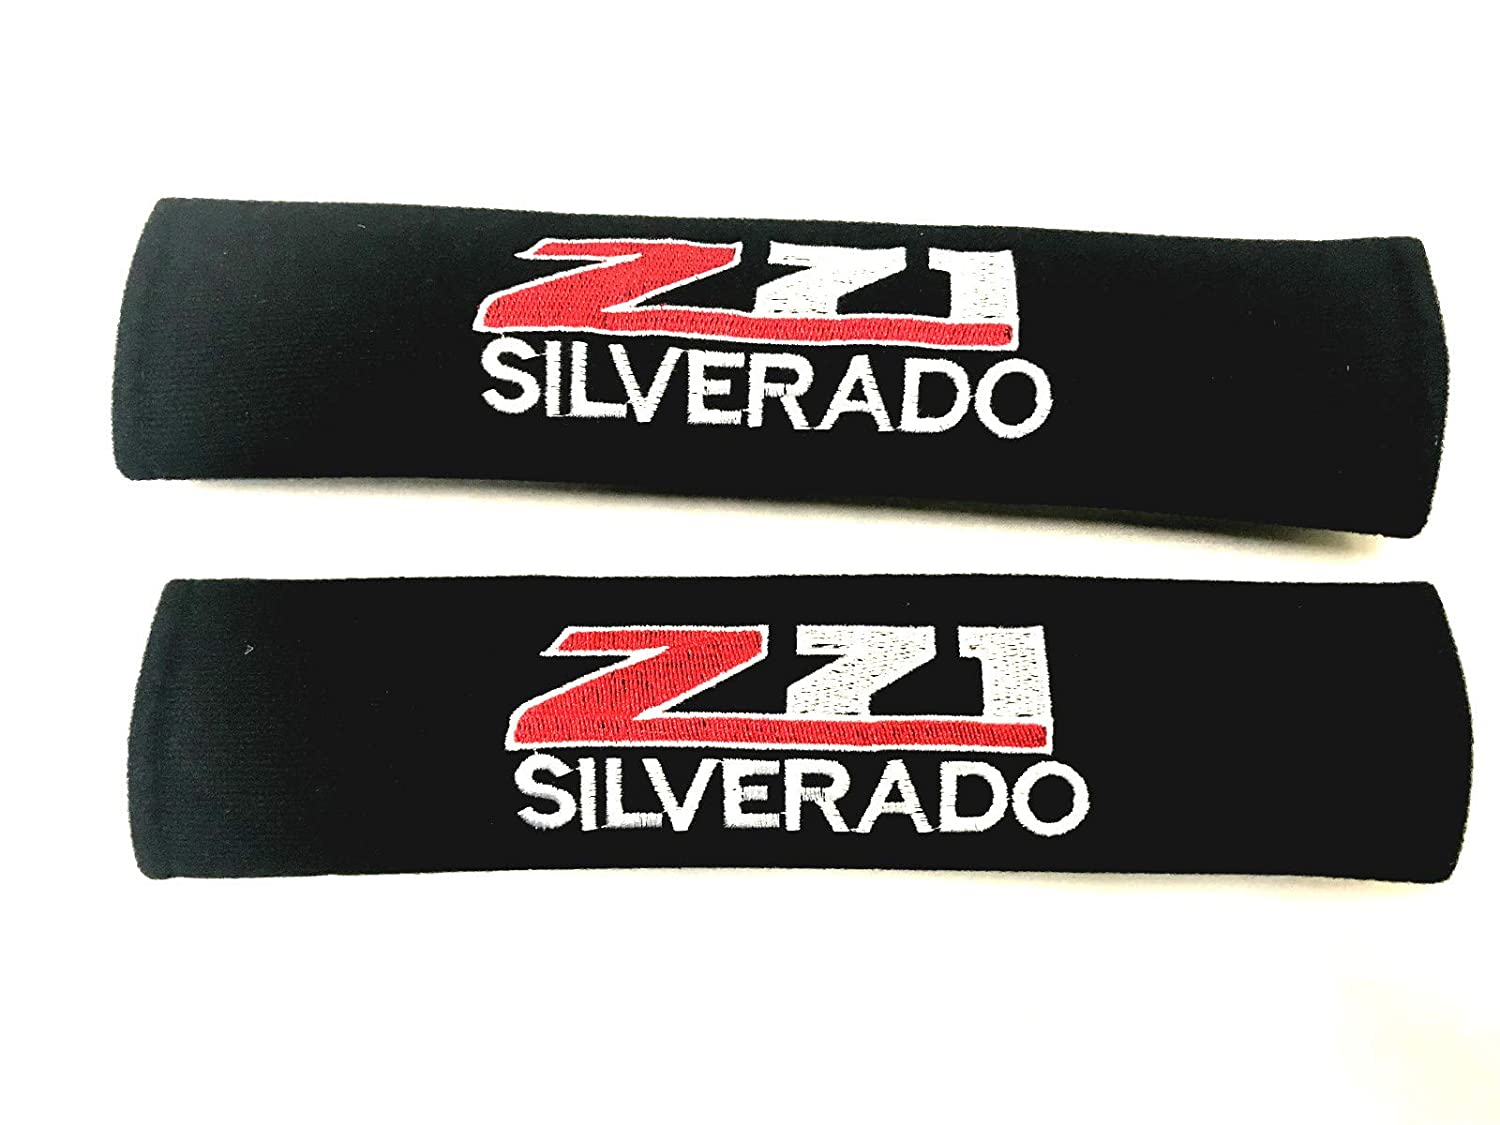 Foxxi Pair Embroidery Chevy Z71 Silverado Sport Cotton Seat Belt Cover Shoulder Pad Cushion Racing